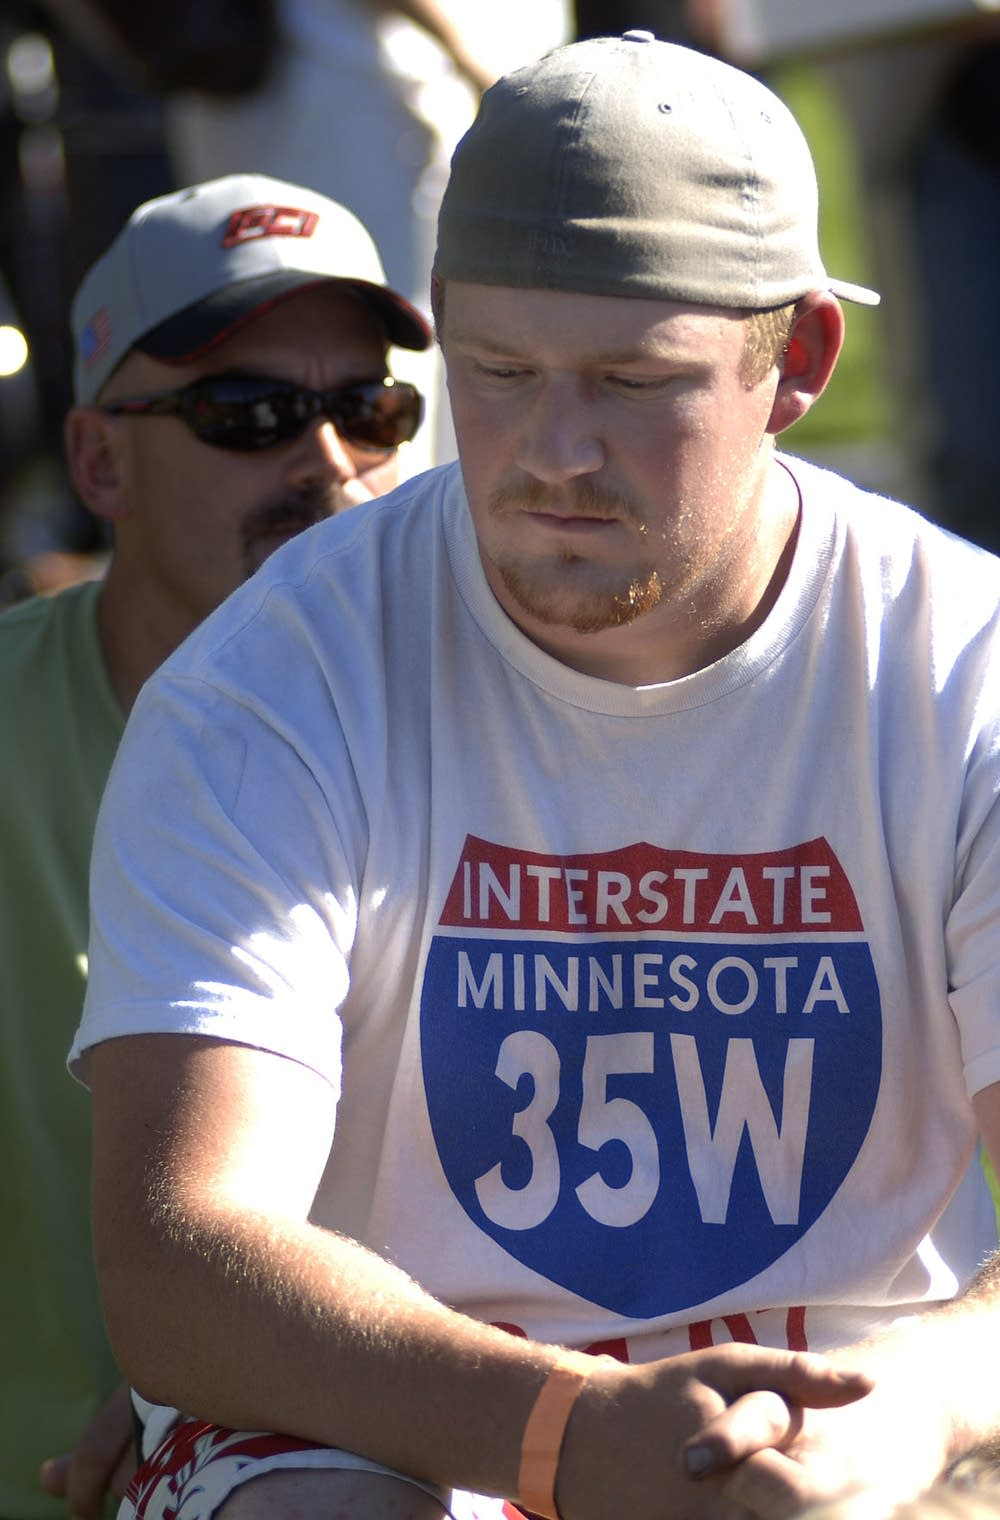 Bridge collapse survivor Josh Weidendorf